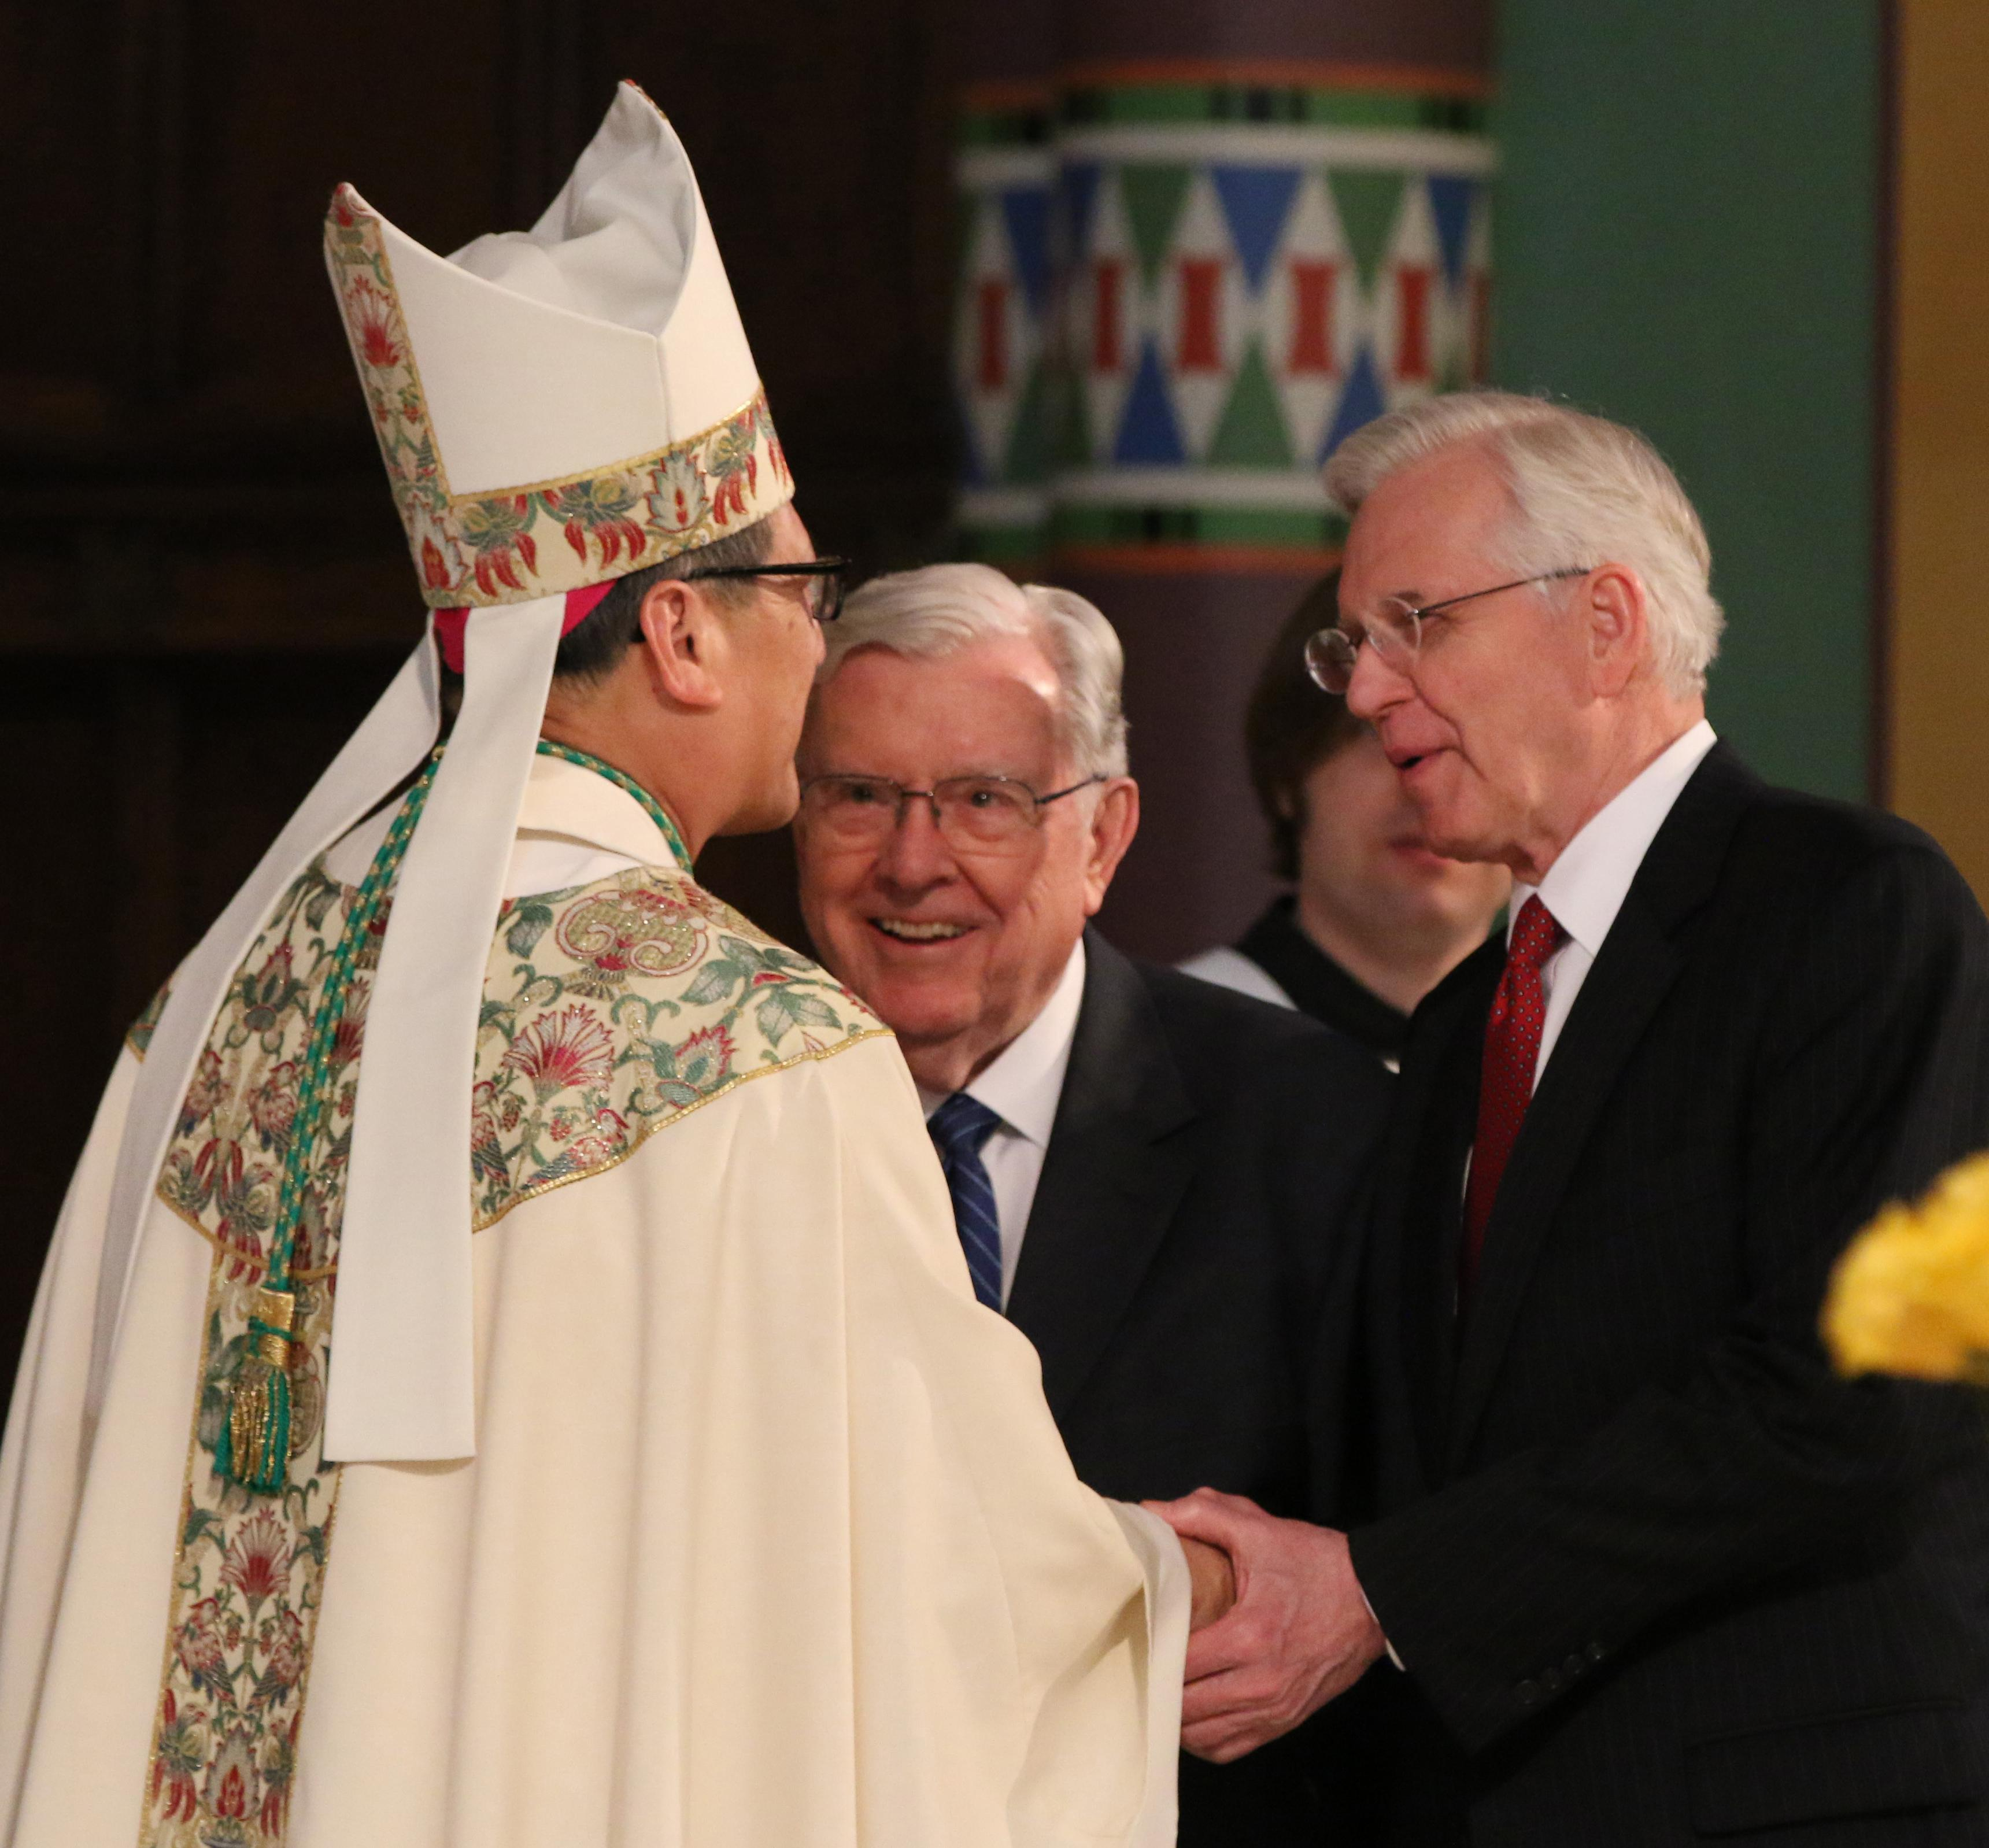 Utah catholic bishop becomes key face in interfaith scene kutv during the greetings by the faithful ecumenical representatives and civic leaders bishop solis greets m4hsunfo Image collections